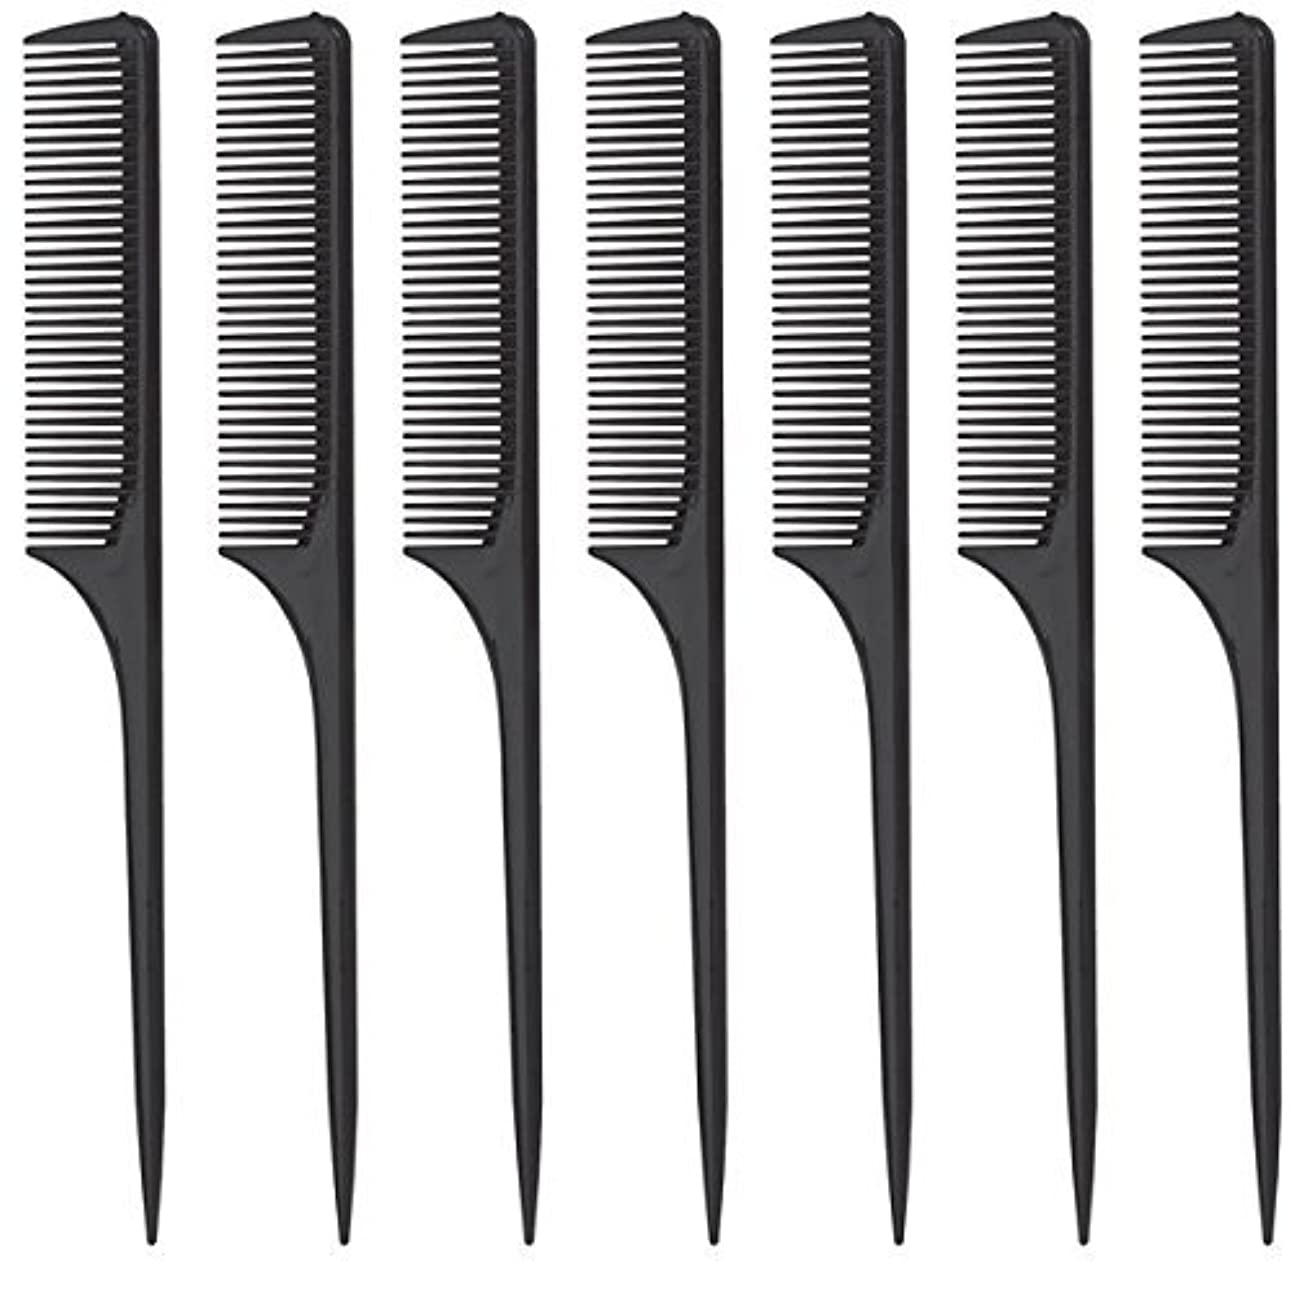 Diane Rat Tail Comb, Black, 9 Inch, 12 Count [並行輸入品]